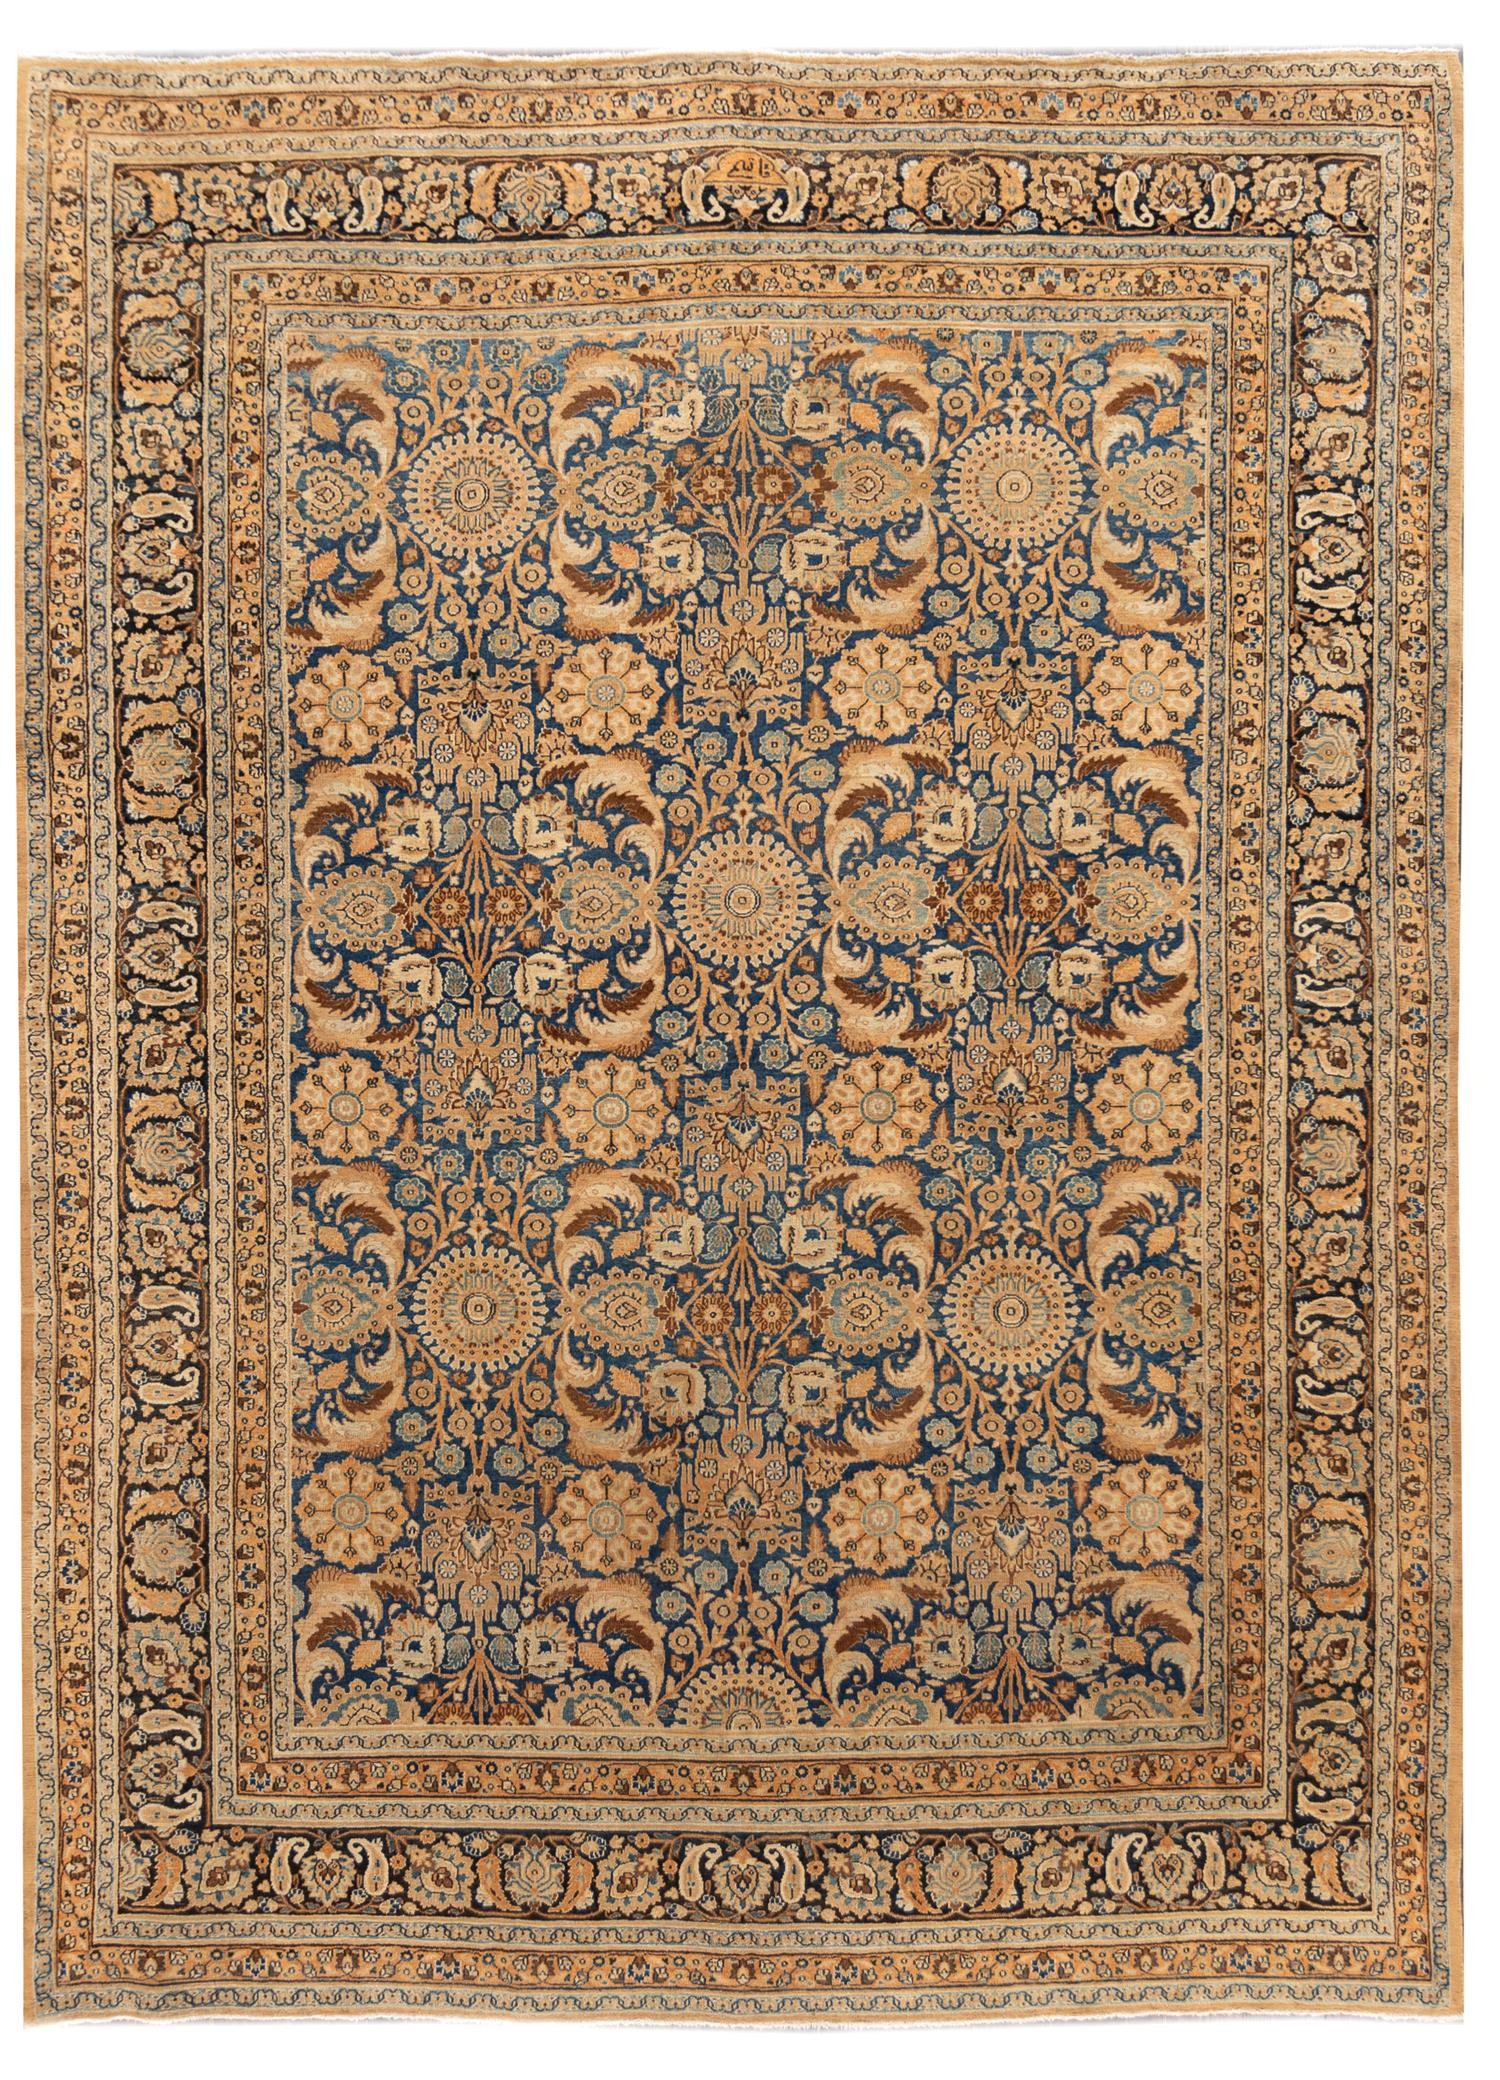 Early 20th Century Antique Persian Tabriz Rug, 10x13